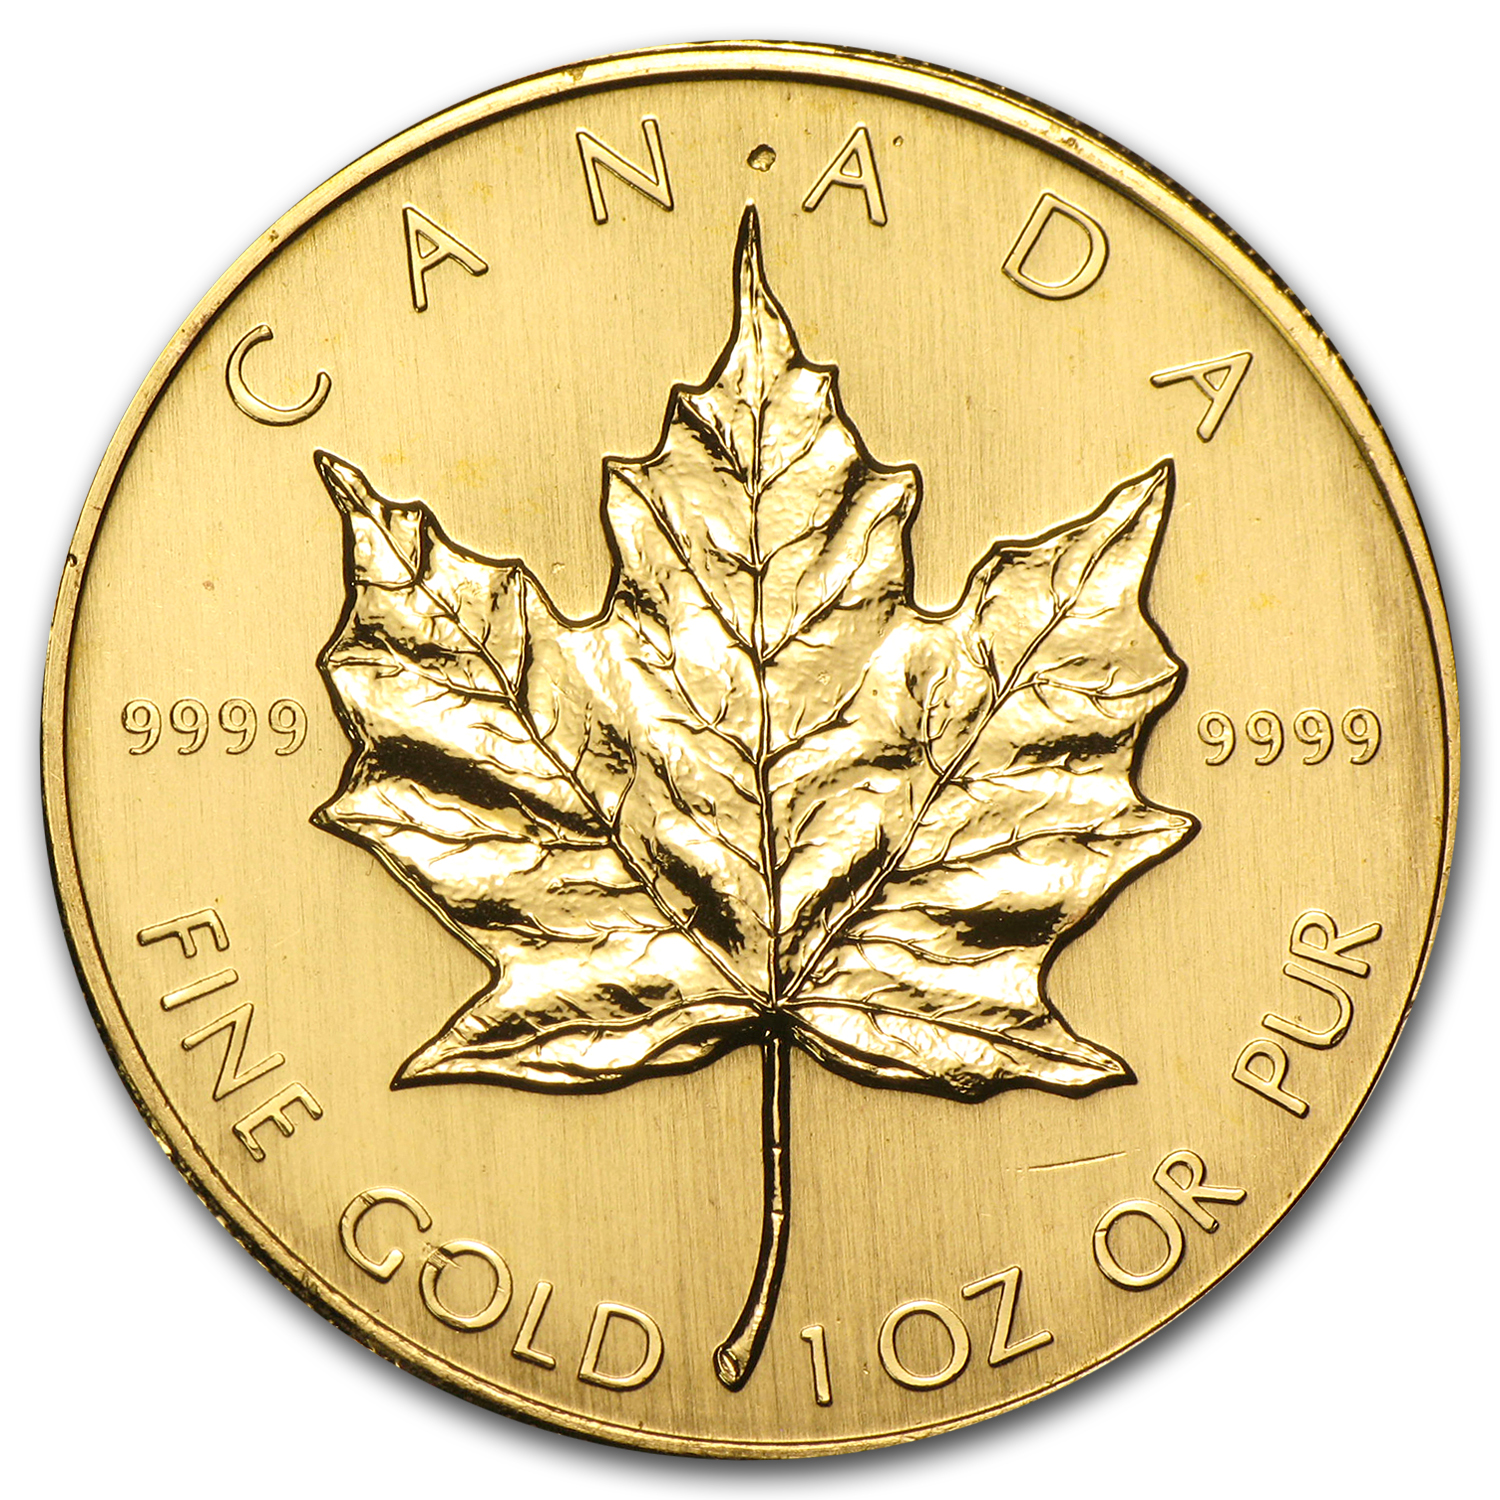 1983 1 oz Gold Canadian Maple Leaf - Brilliant Uncirculated